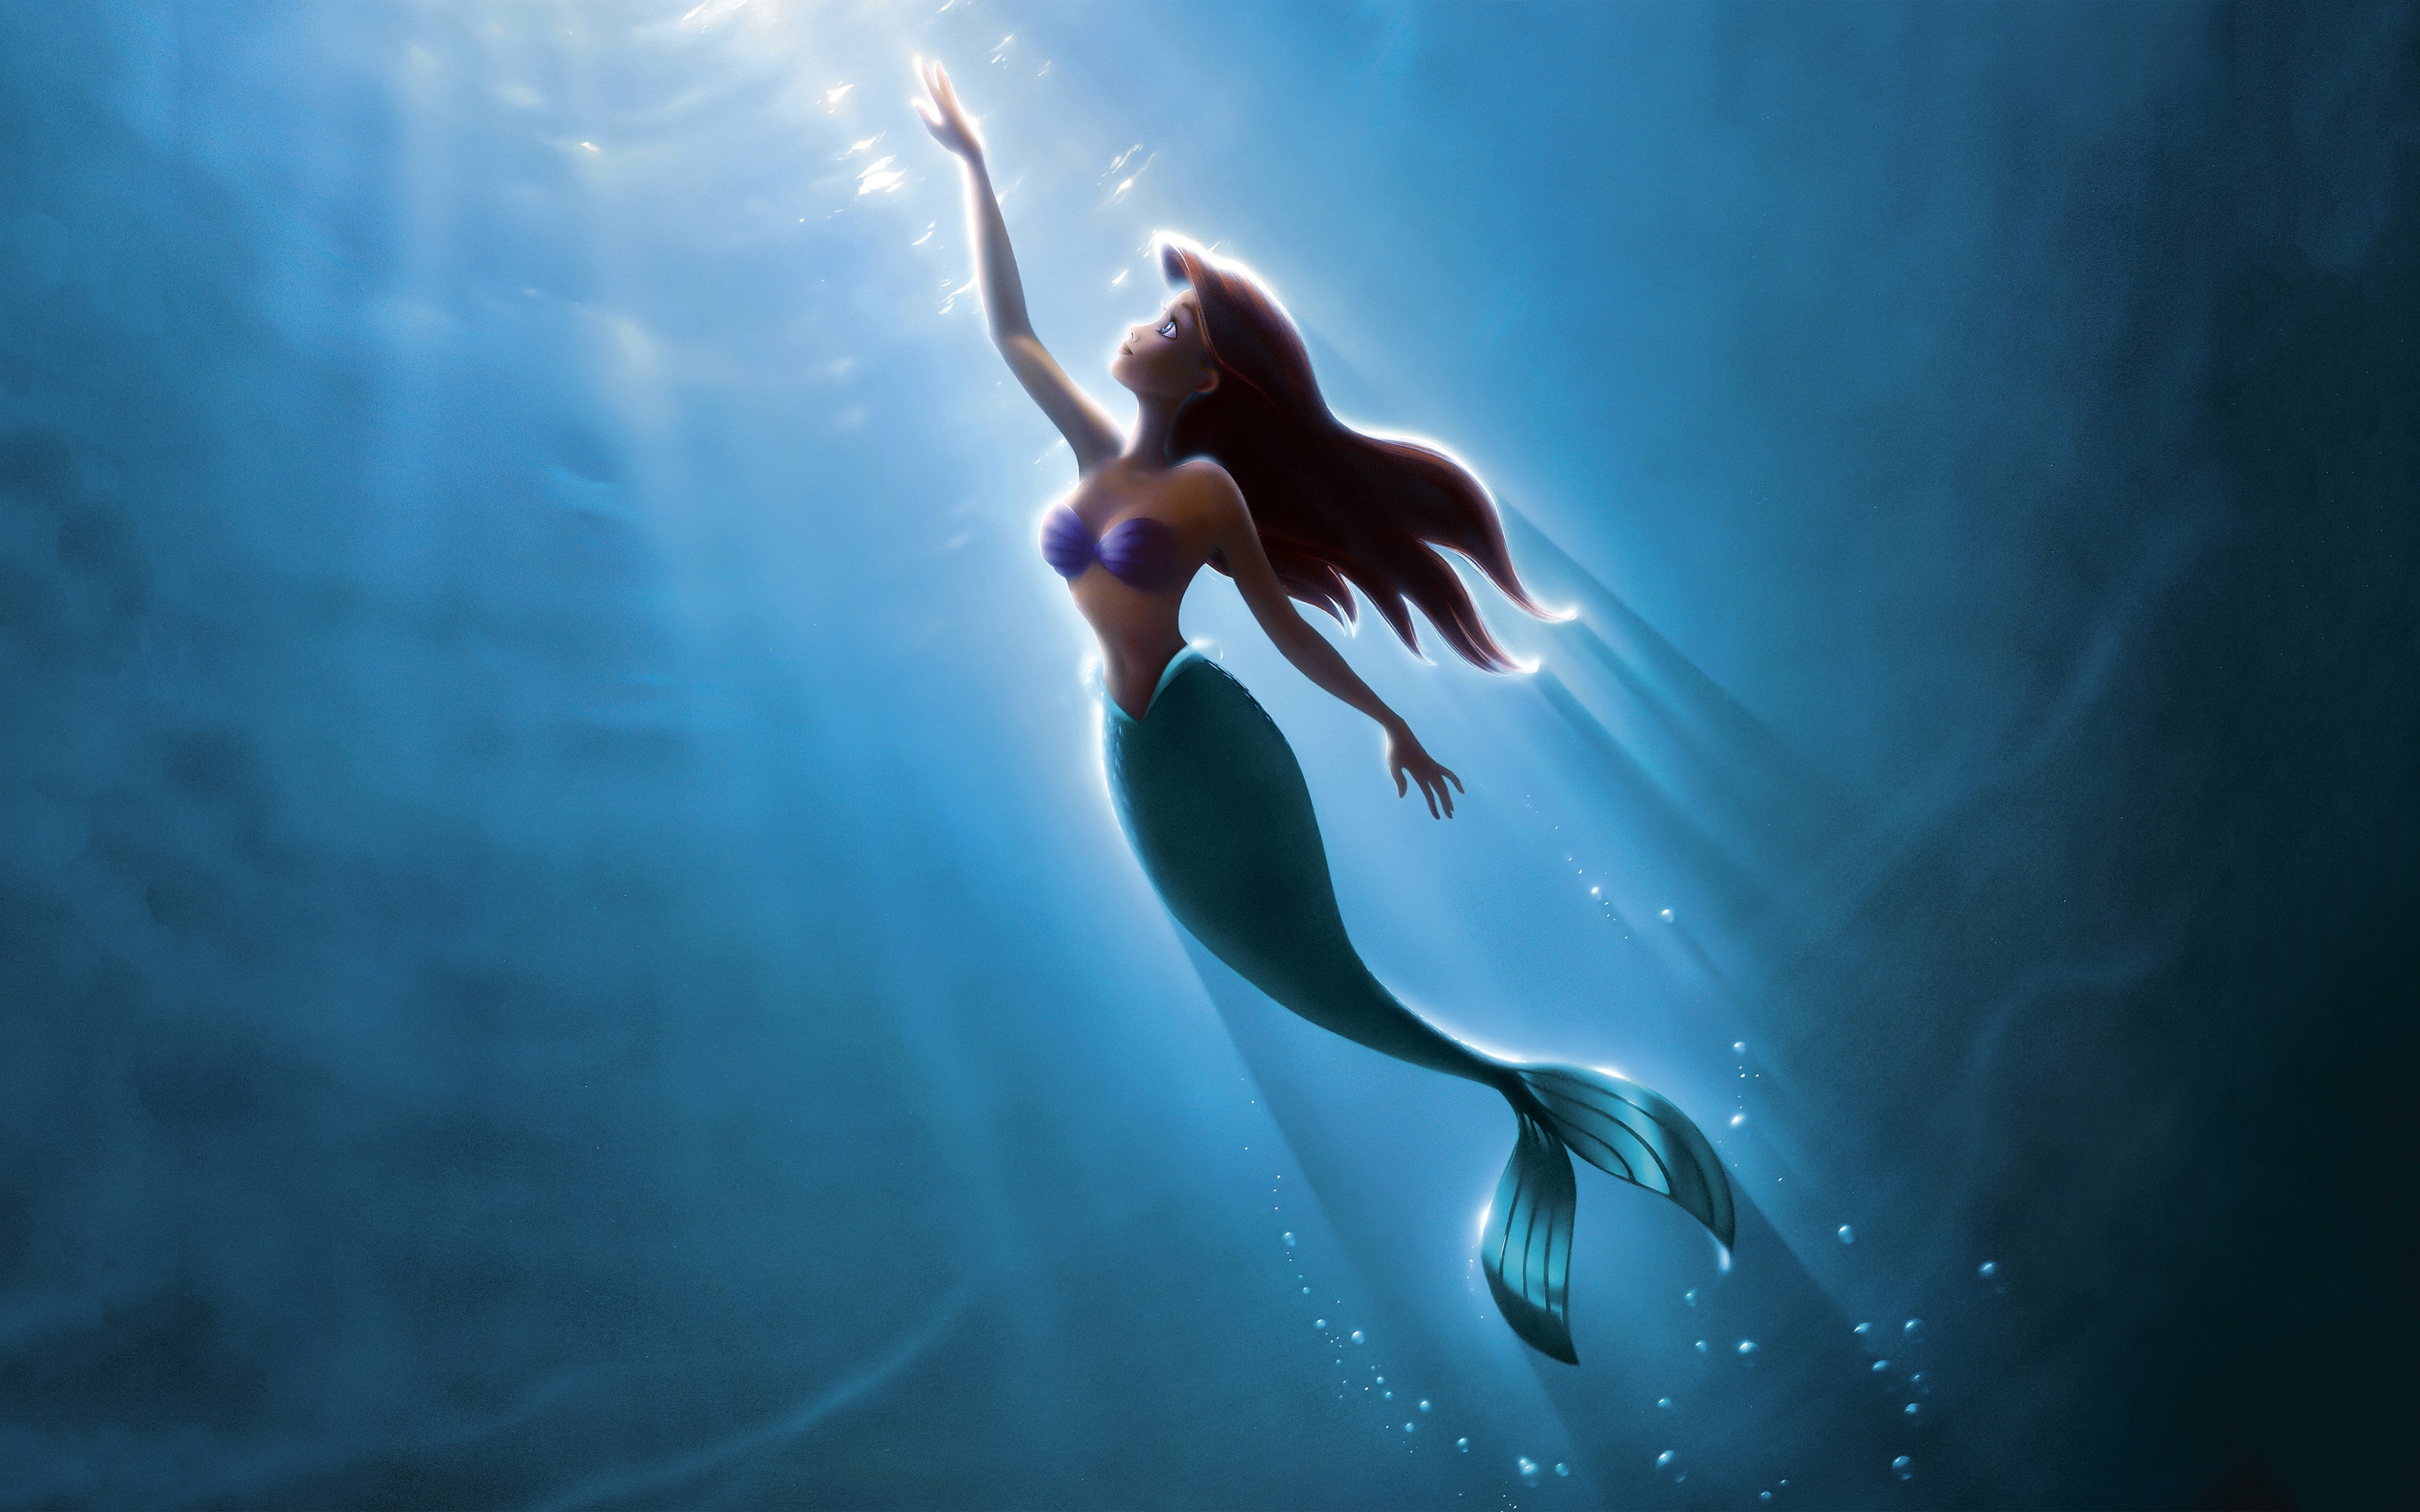 the little mermaid 4k, hd movies, 4k wallpapers, images, backgrounds